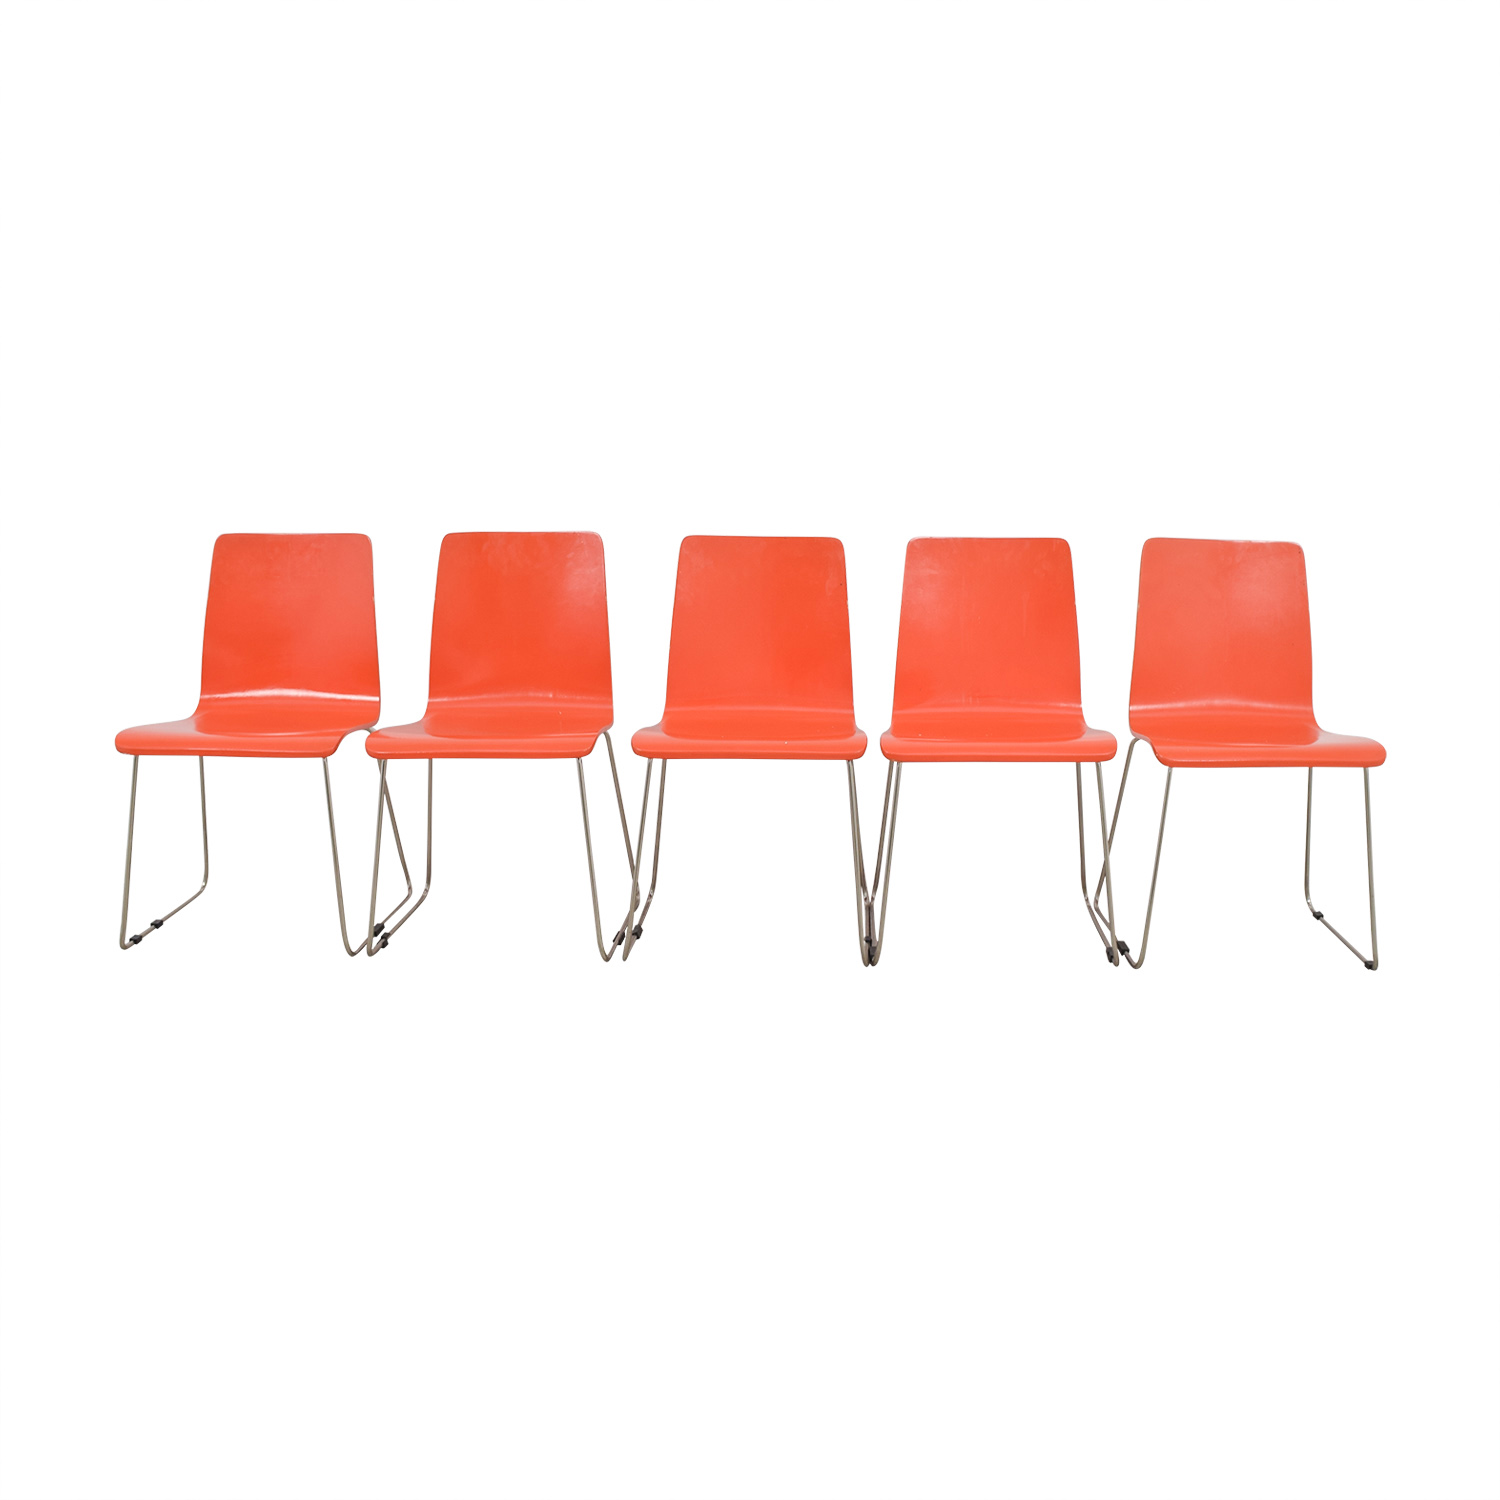 CB2 CB2 Echo Orange Dining Chairs on sale